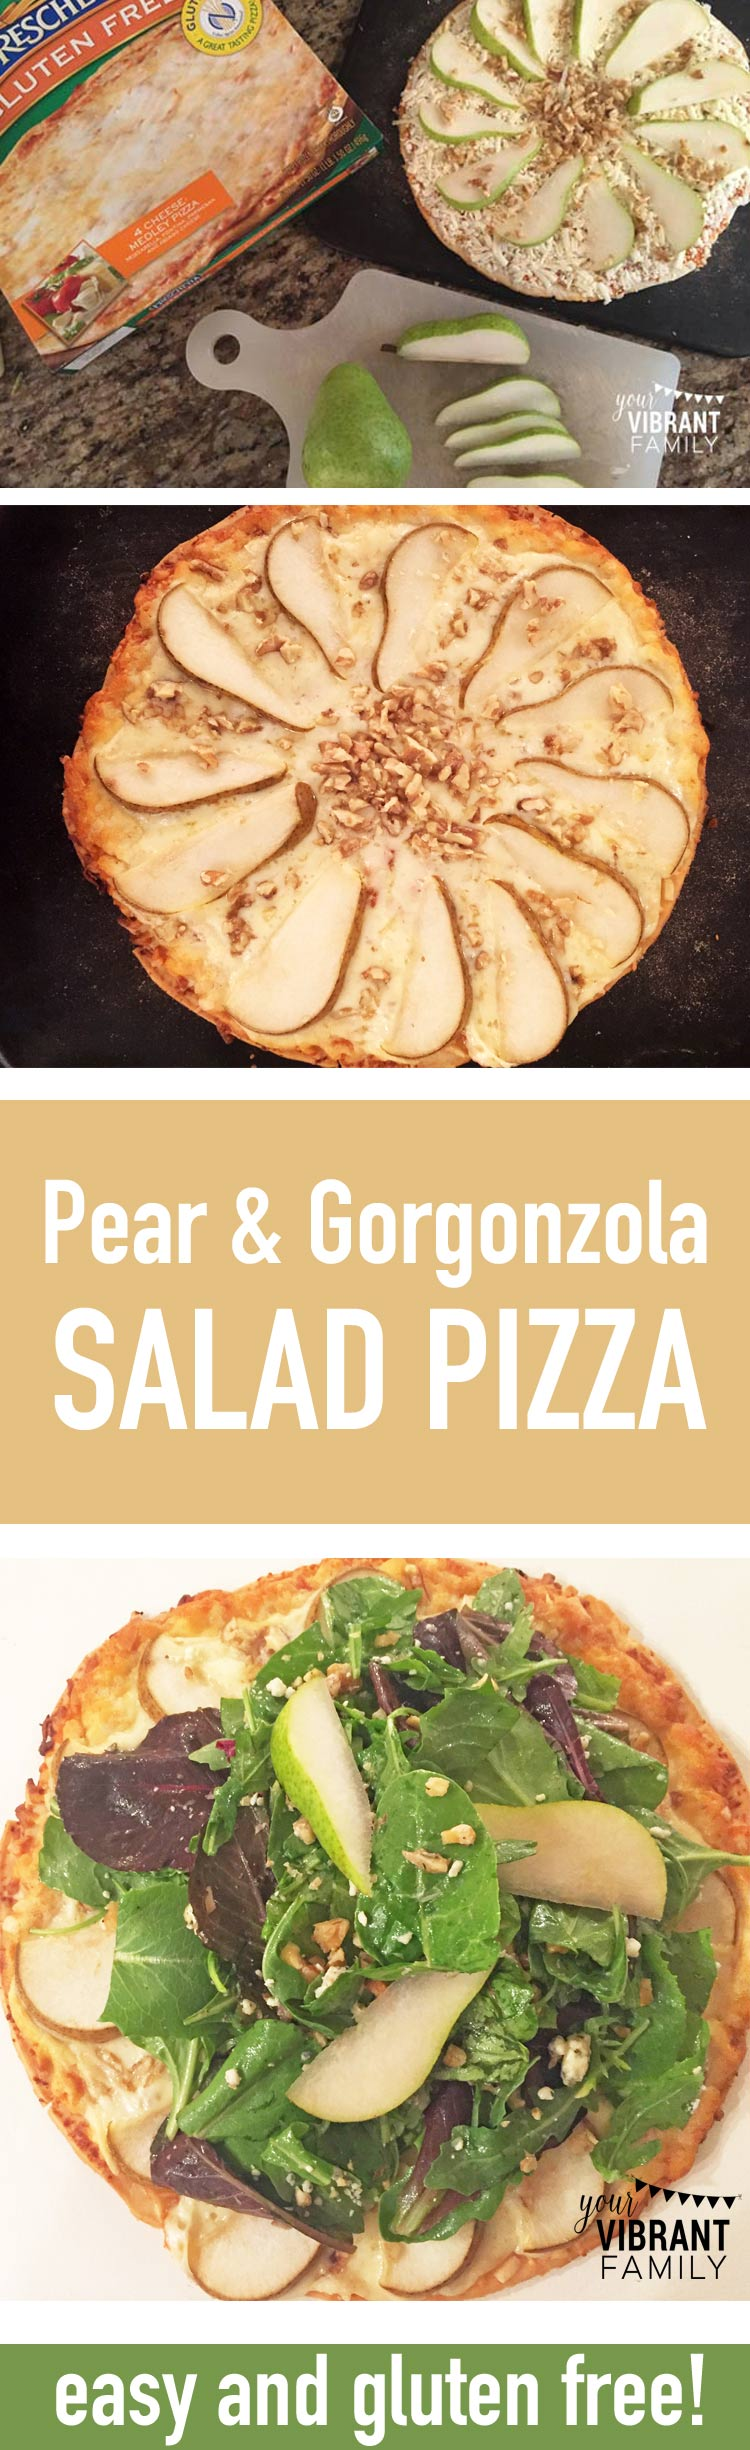 Looking for a different (and delicious) way to eat pizza? I can't wait to share this Pear and Gorgonzola Salad Pizza recipe with you! Yes, I said pizza and salad together! And I want to show you my trick to making it faster (and gluten free)! You'll love this easy weeknight dinner recipe!